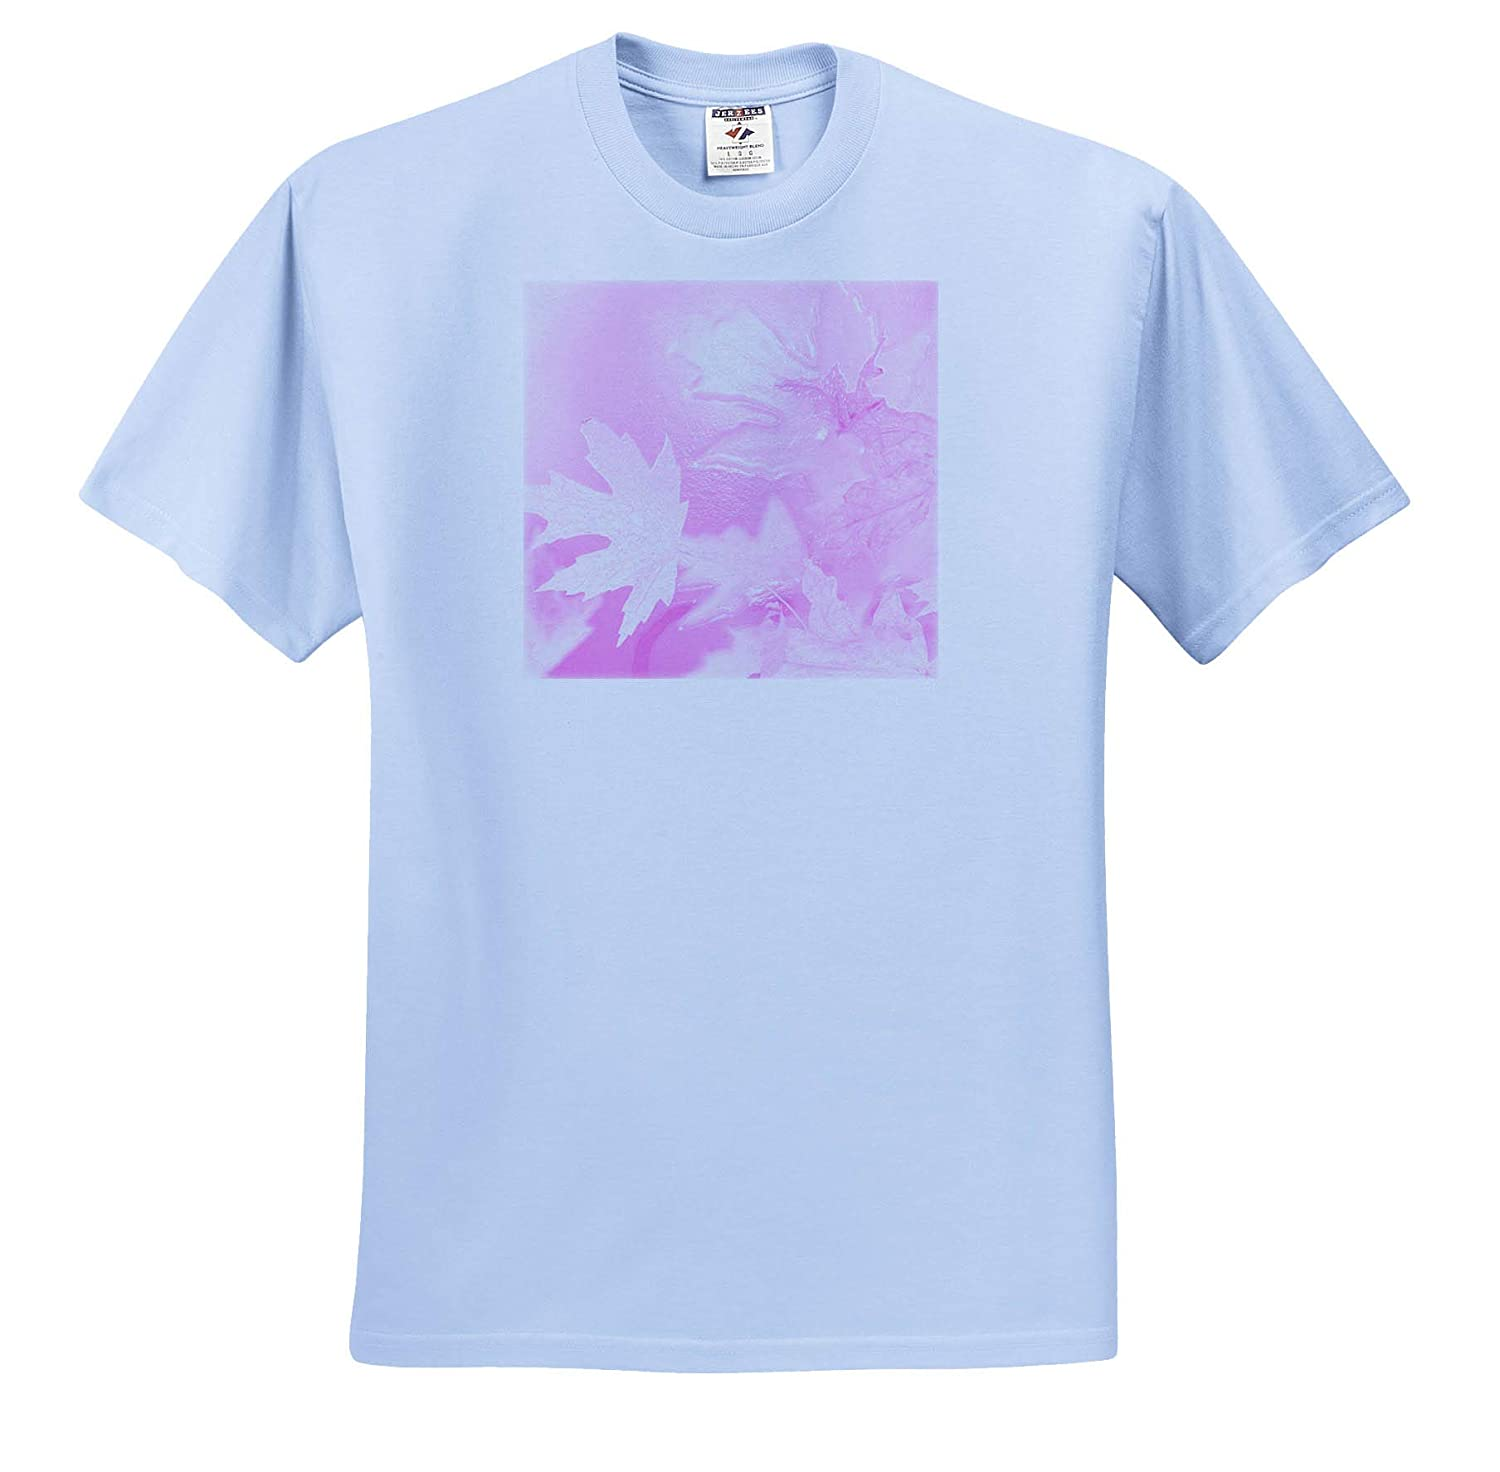 Nature an Abstract Photograph of Maple Leaves with an ICY Pink Affect 3dRose Stamp City - T-Shirts